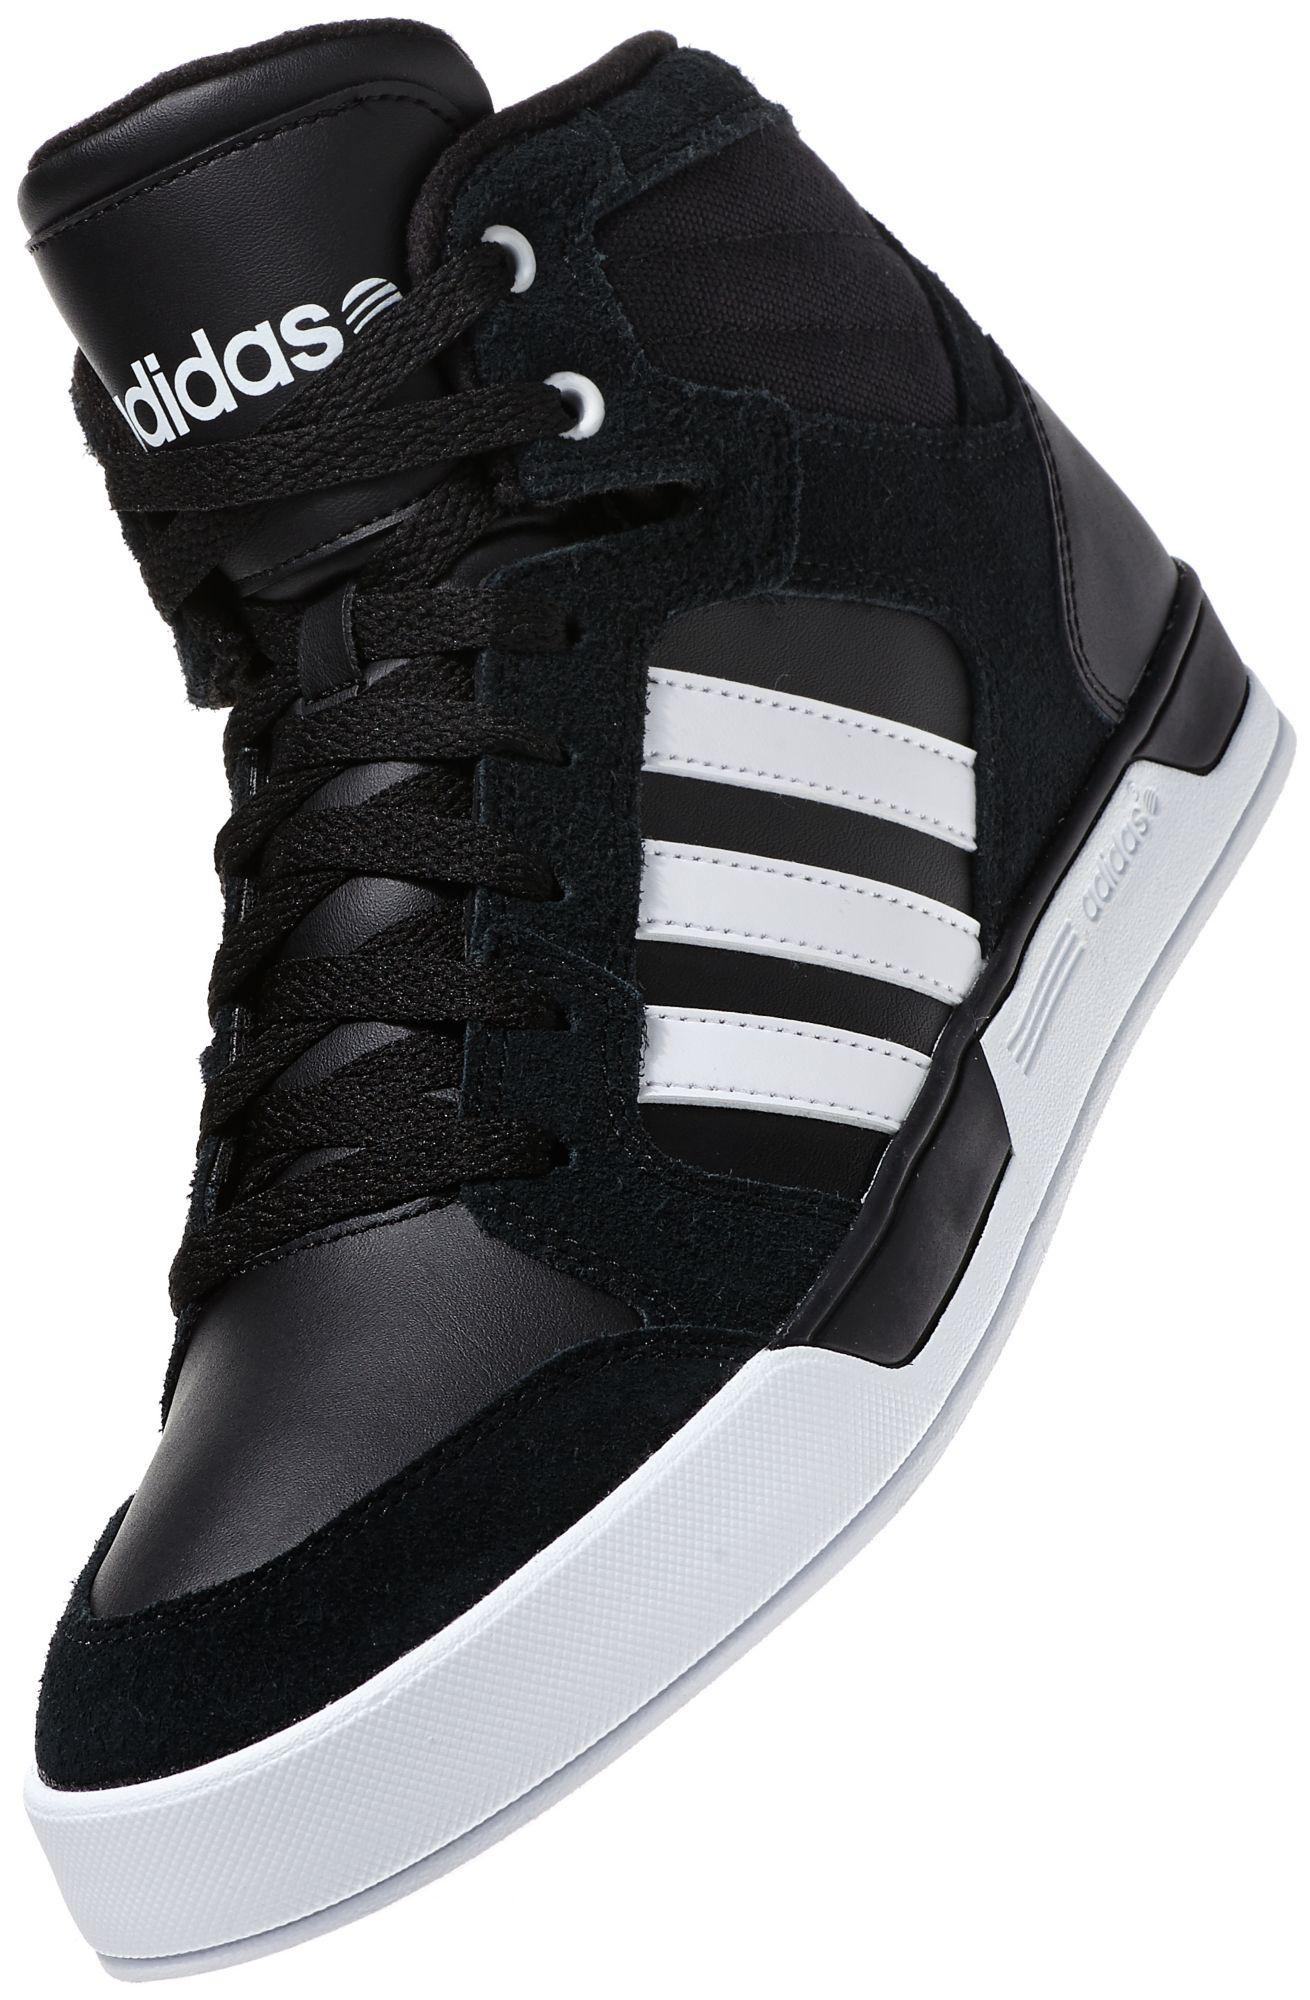 Neo Bbneo Raleigh Casual Shoes